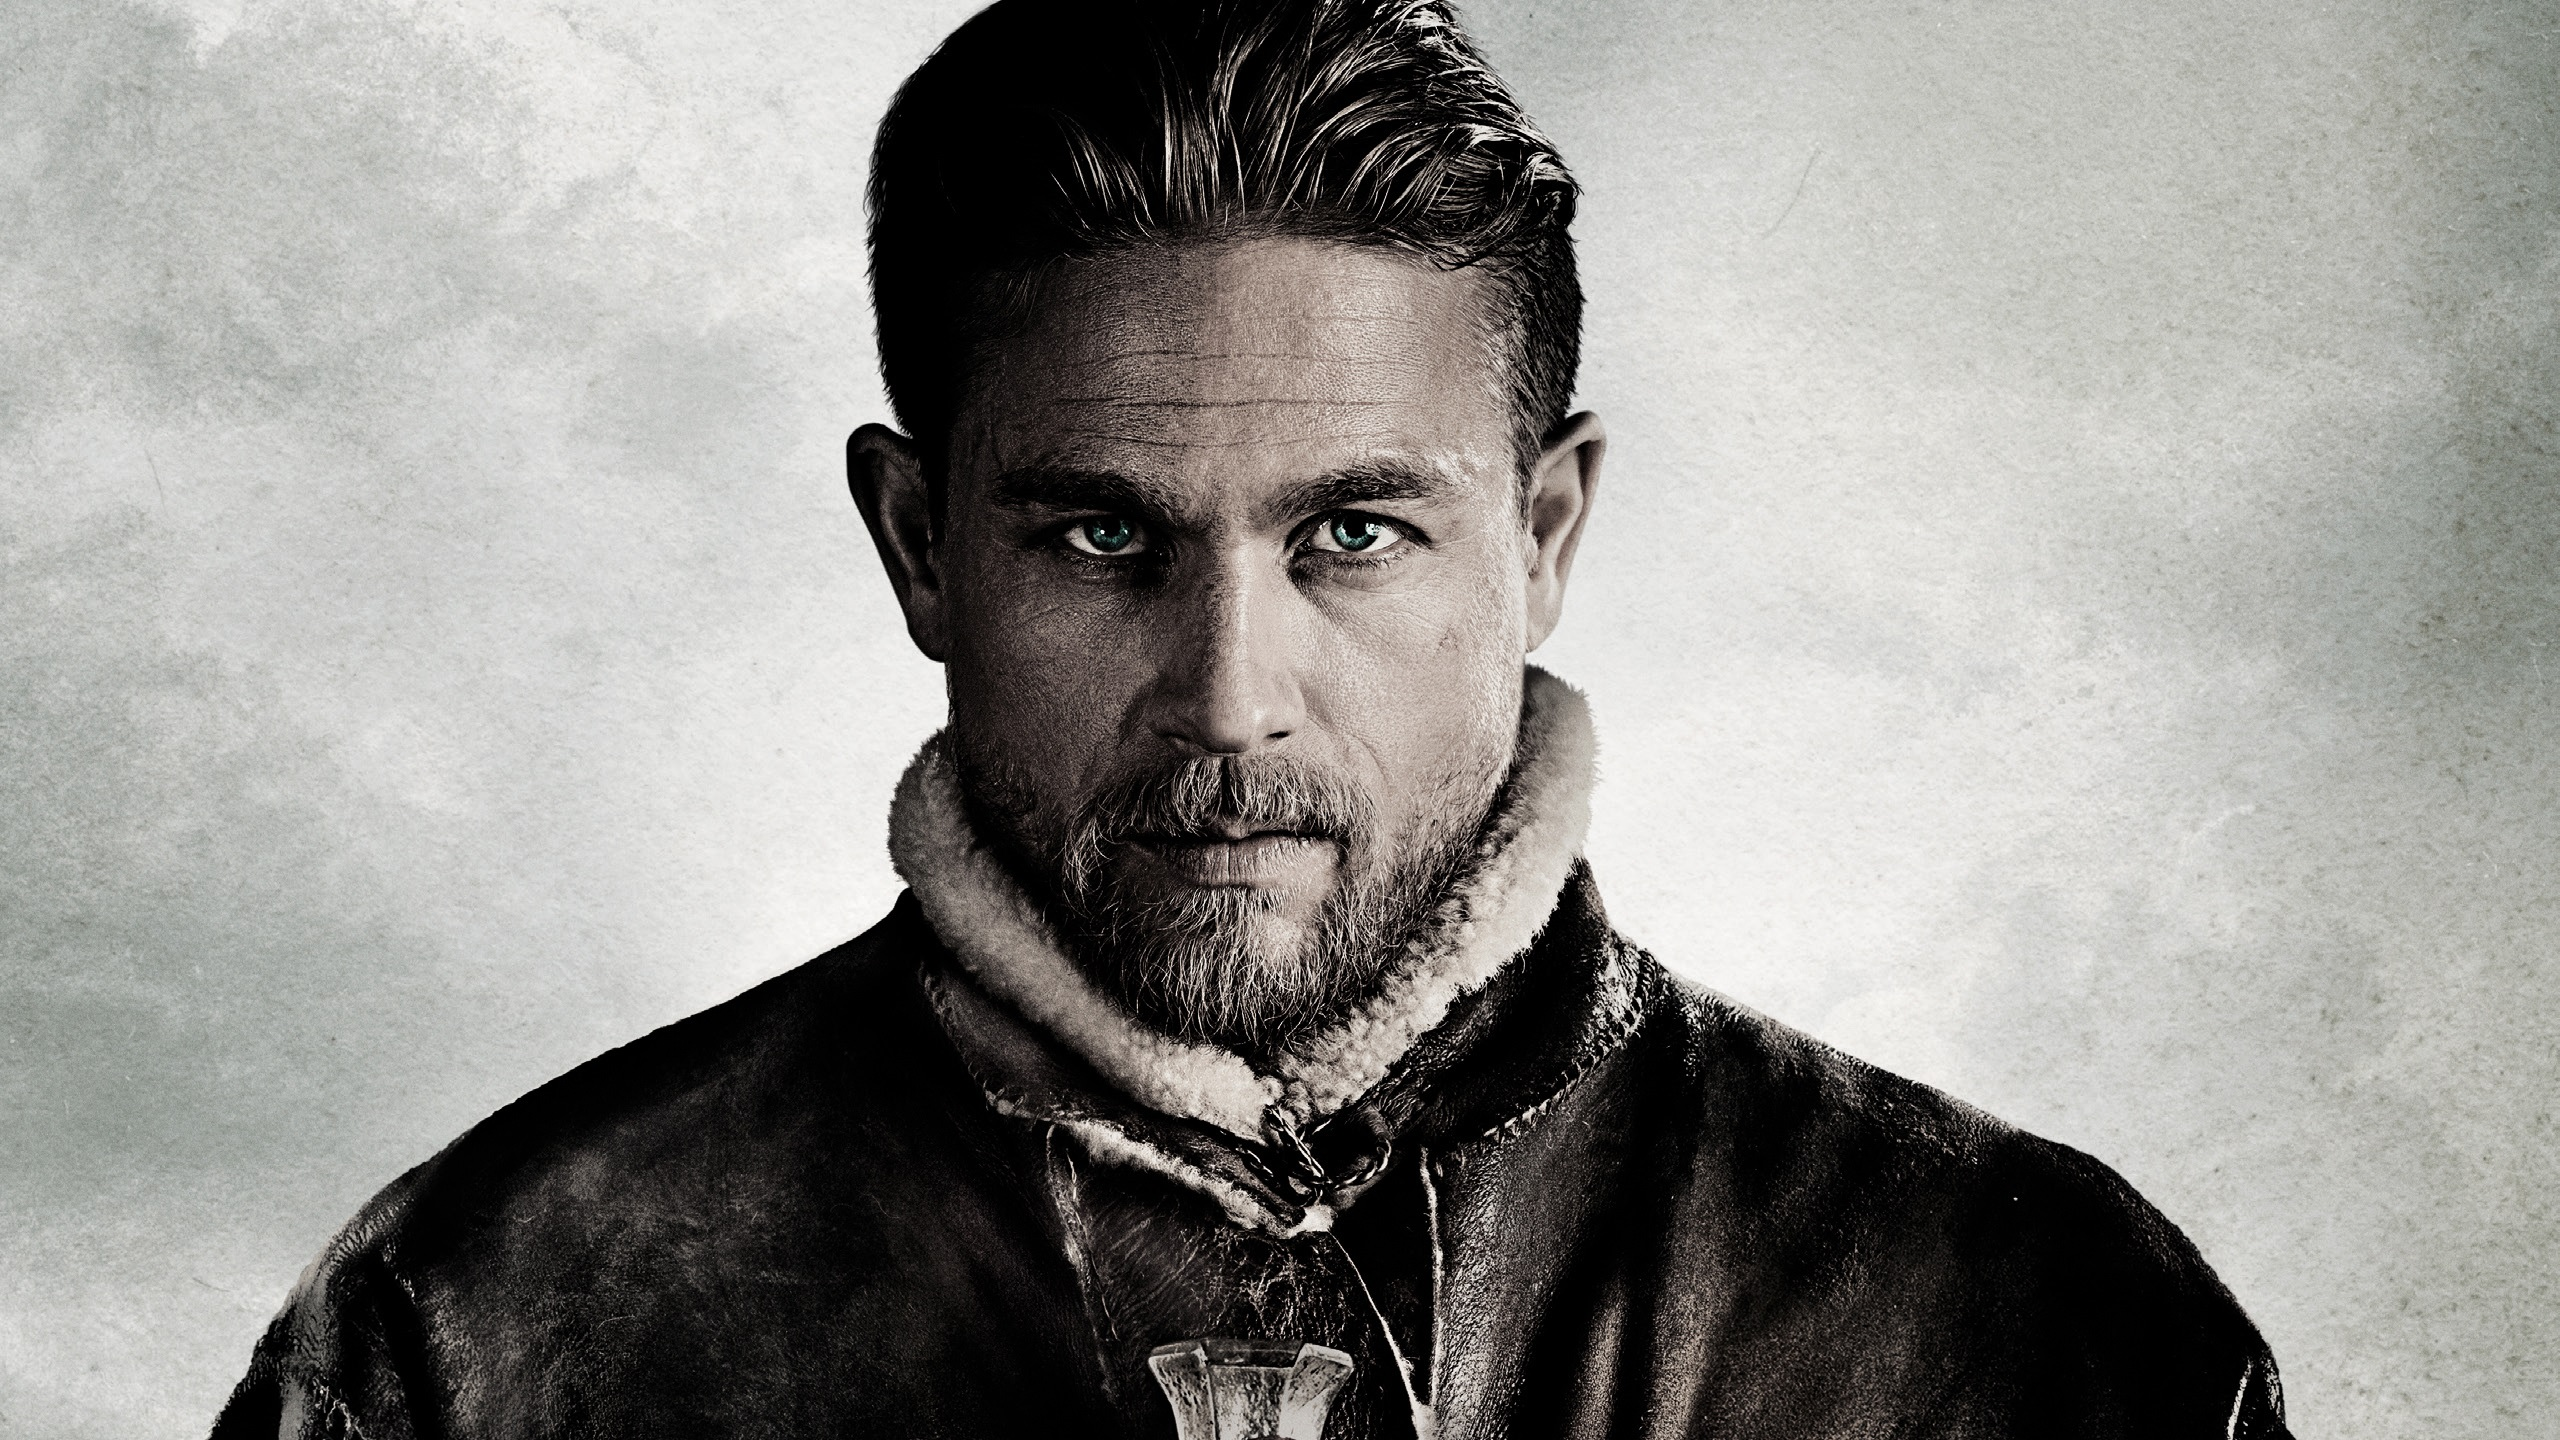 Wallpaper Charlie Hunnam King Arthur Legend Of The Sword